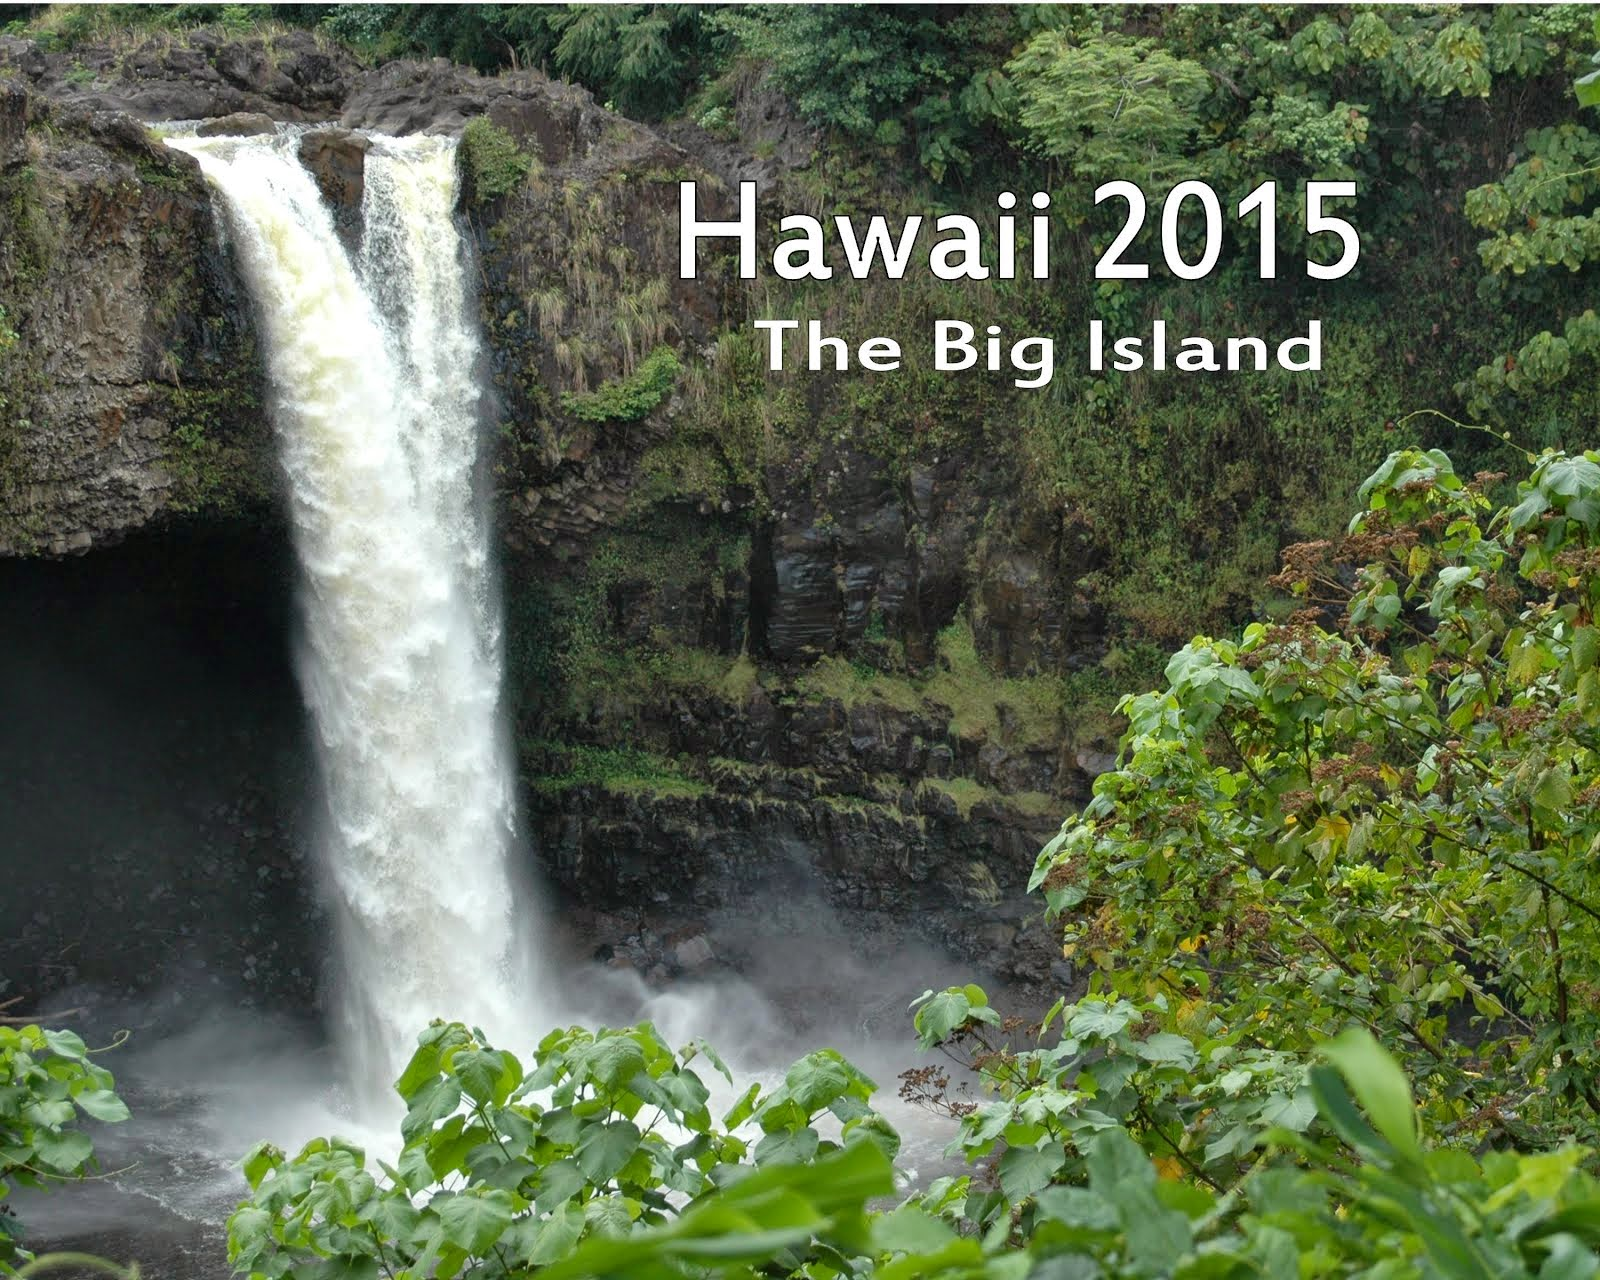 Hawaii Calendar - 2015 - The Big Island